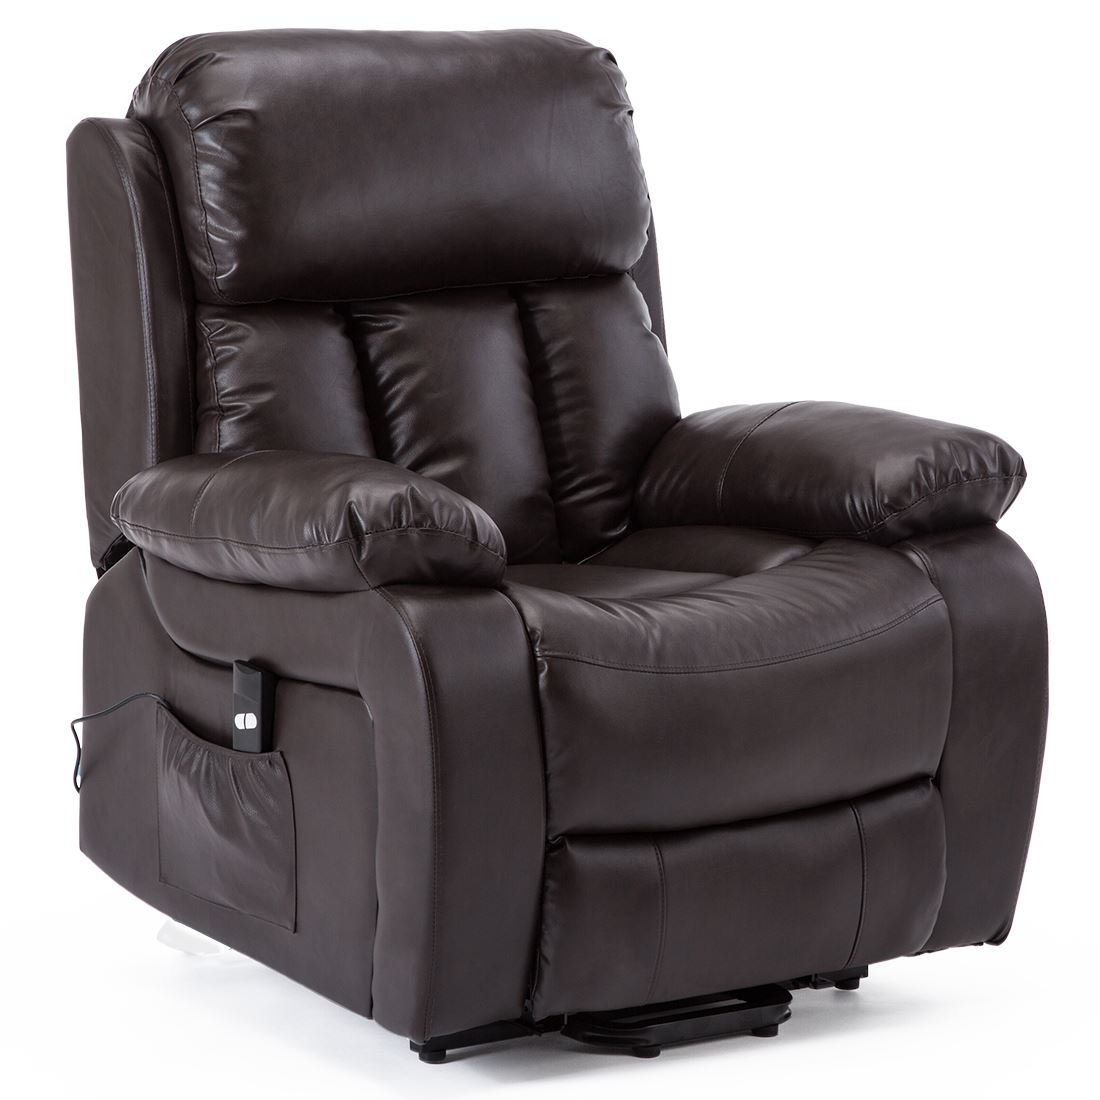 CHESTER-ELECTRIC-RISE-LEATHER-RECLINER-POWER-ARMCHAIR-HEATED-MASSAGE-SOFA-CHAIR thumbnail 11